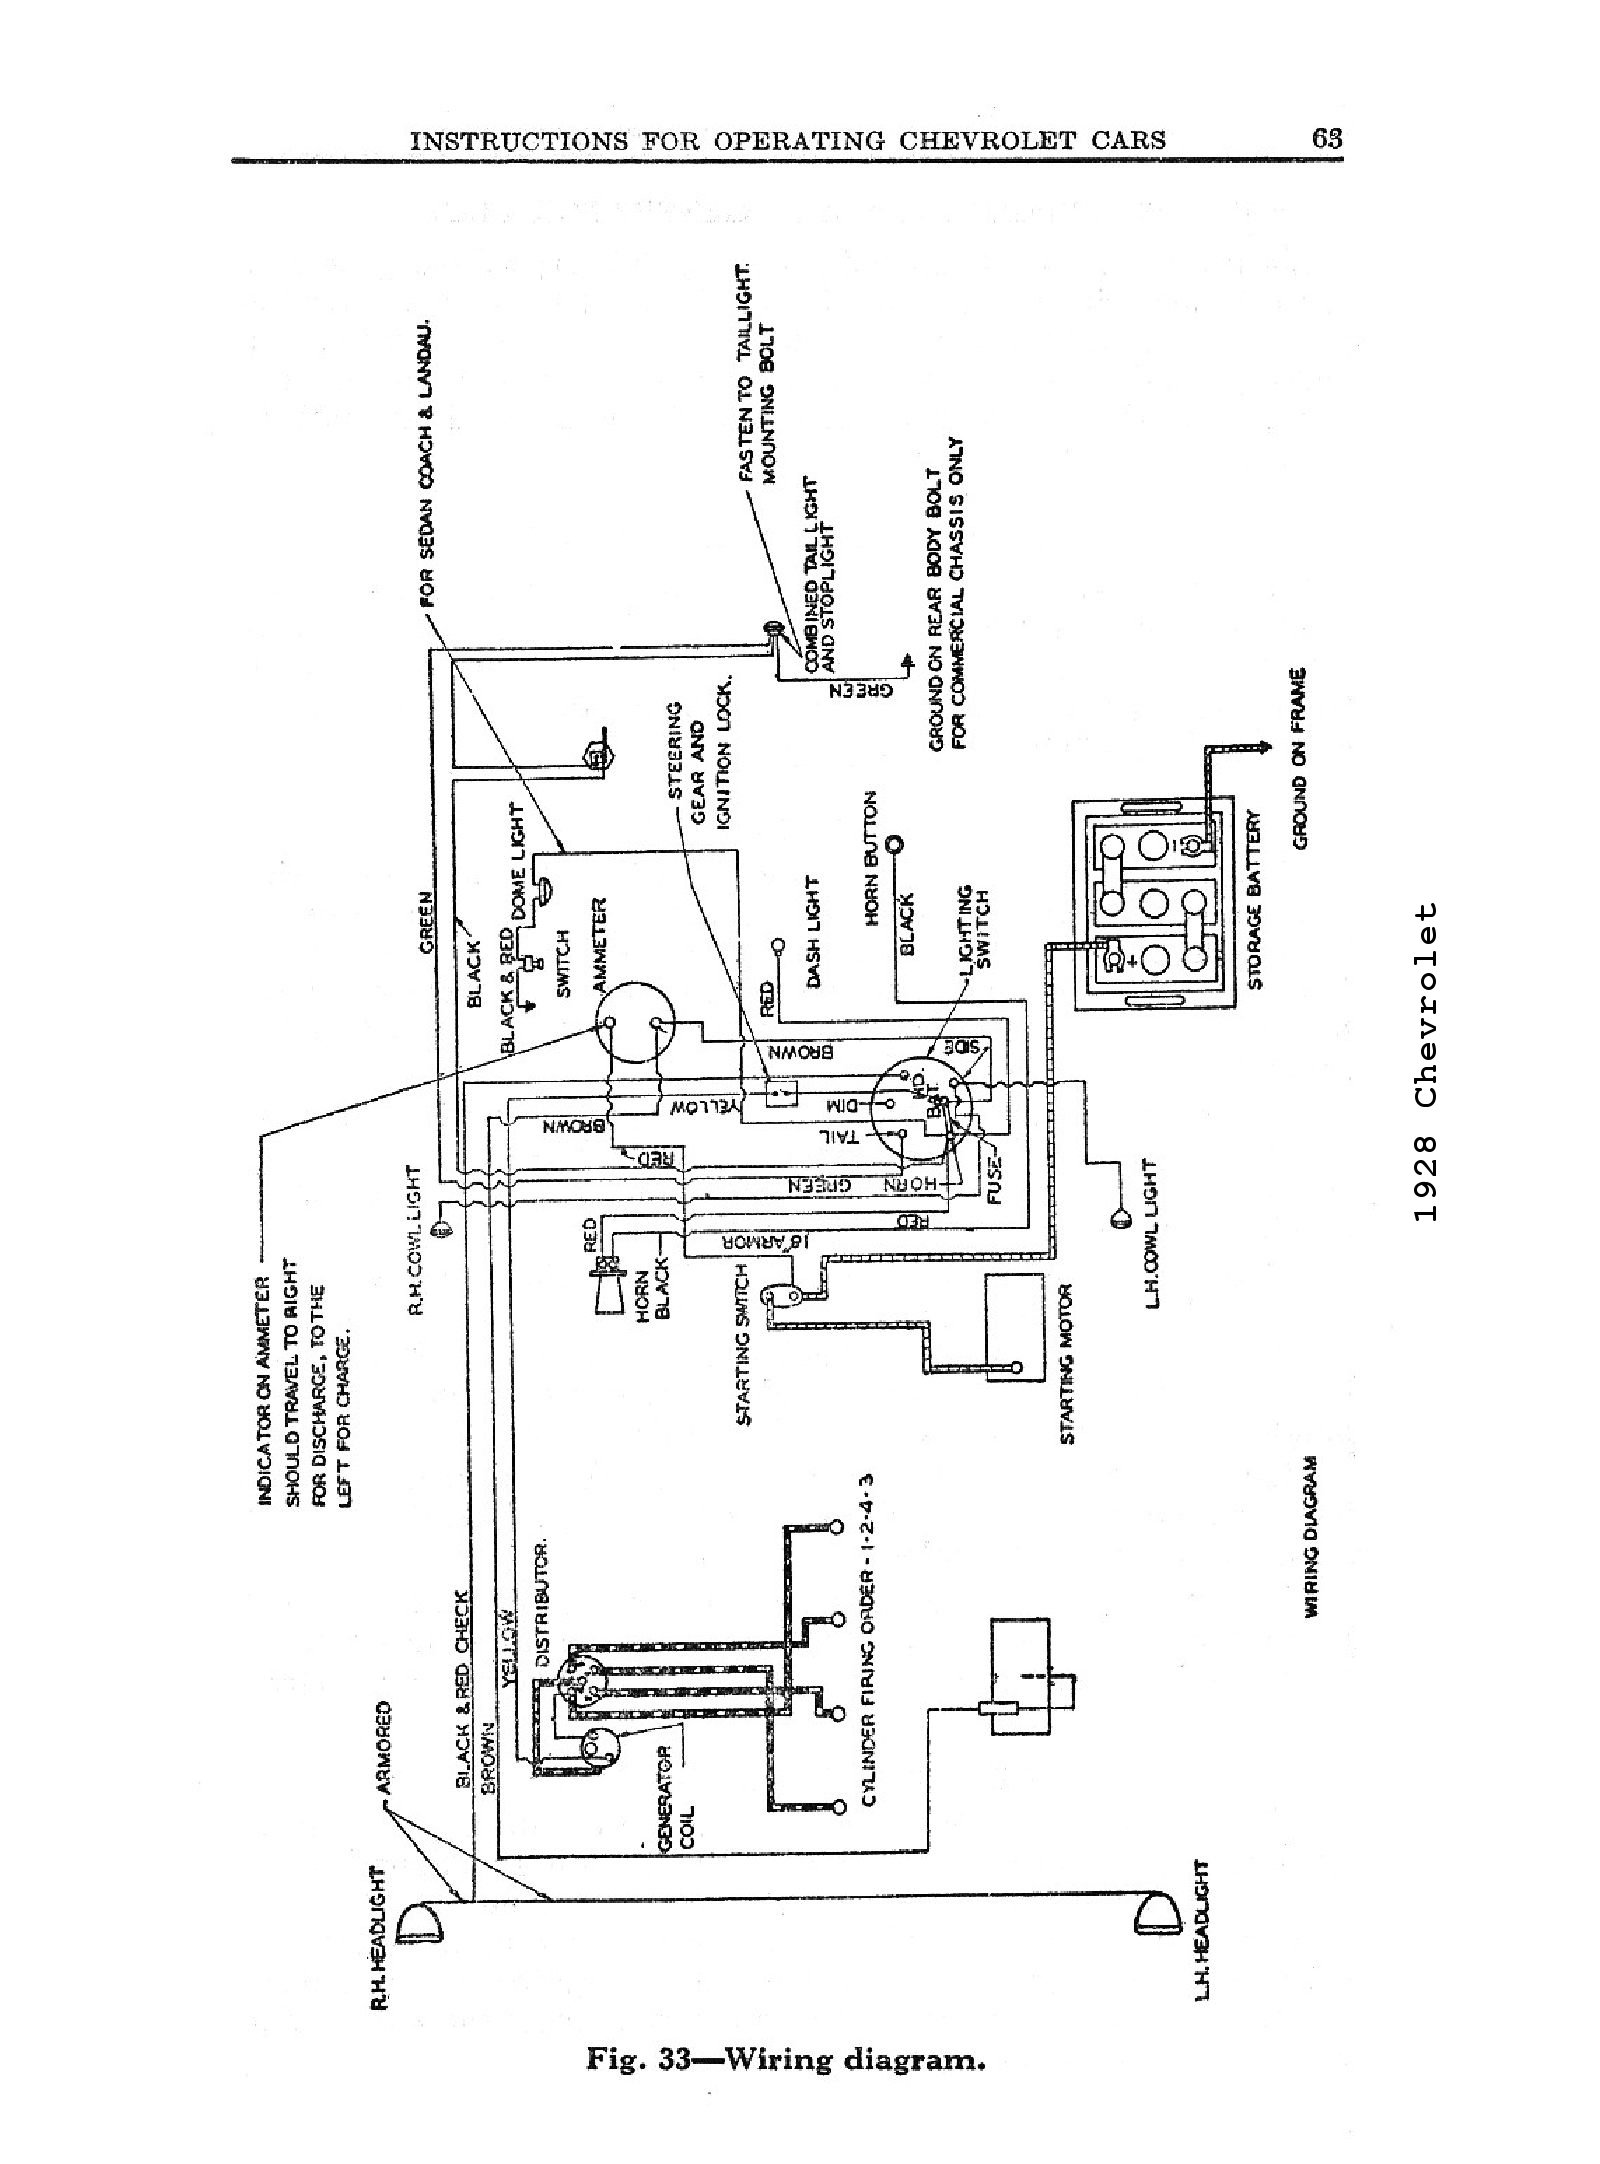 hight resolution of wiring diagram for 1954 chevy bel air wiring diagram megachevy wiring diagrams 1928 1928 wiring